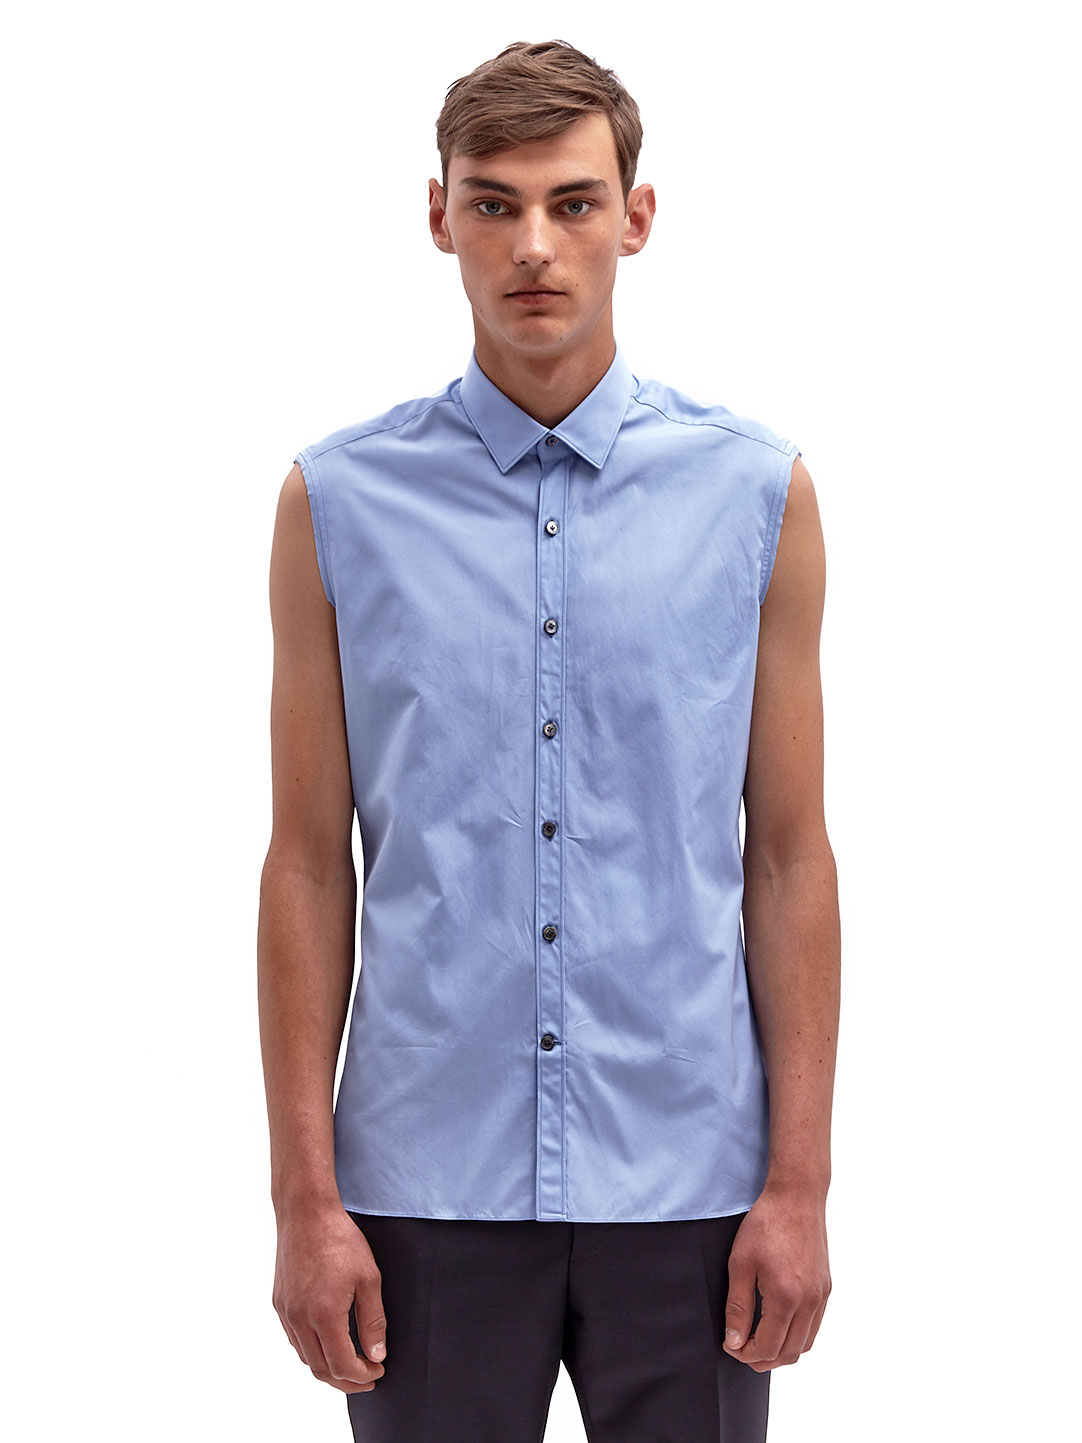 Lyst - Lanvin Mens Sleeveless Shirt in Blue for Men